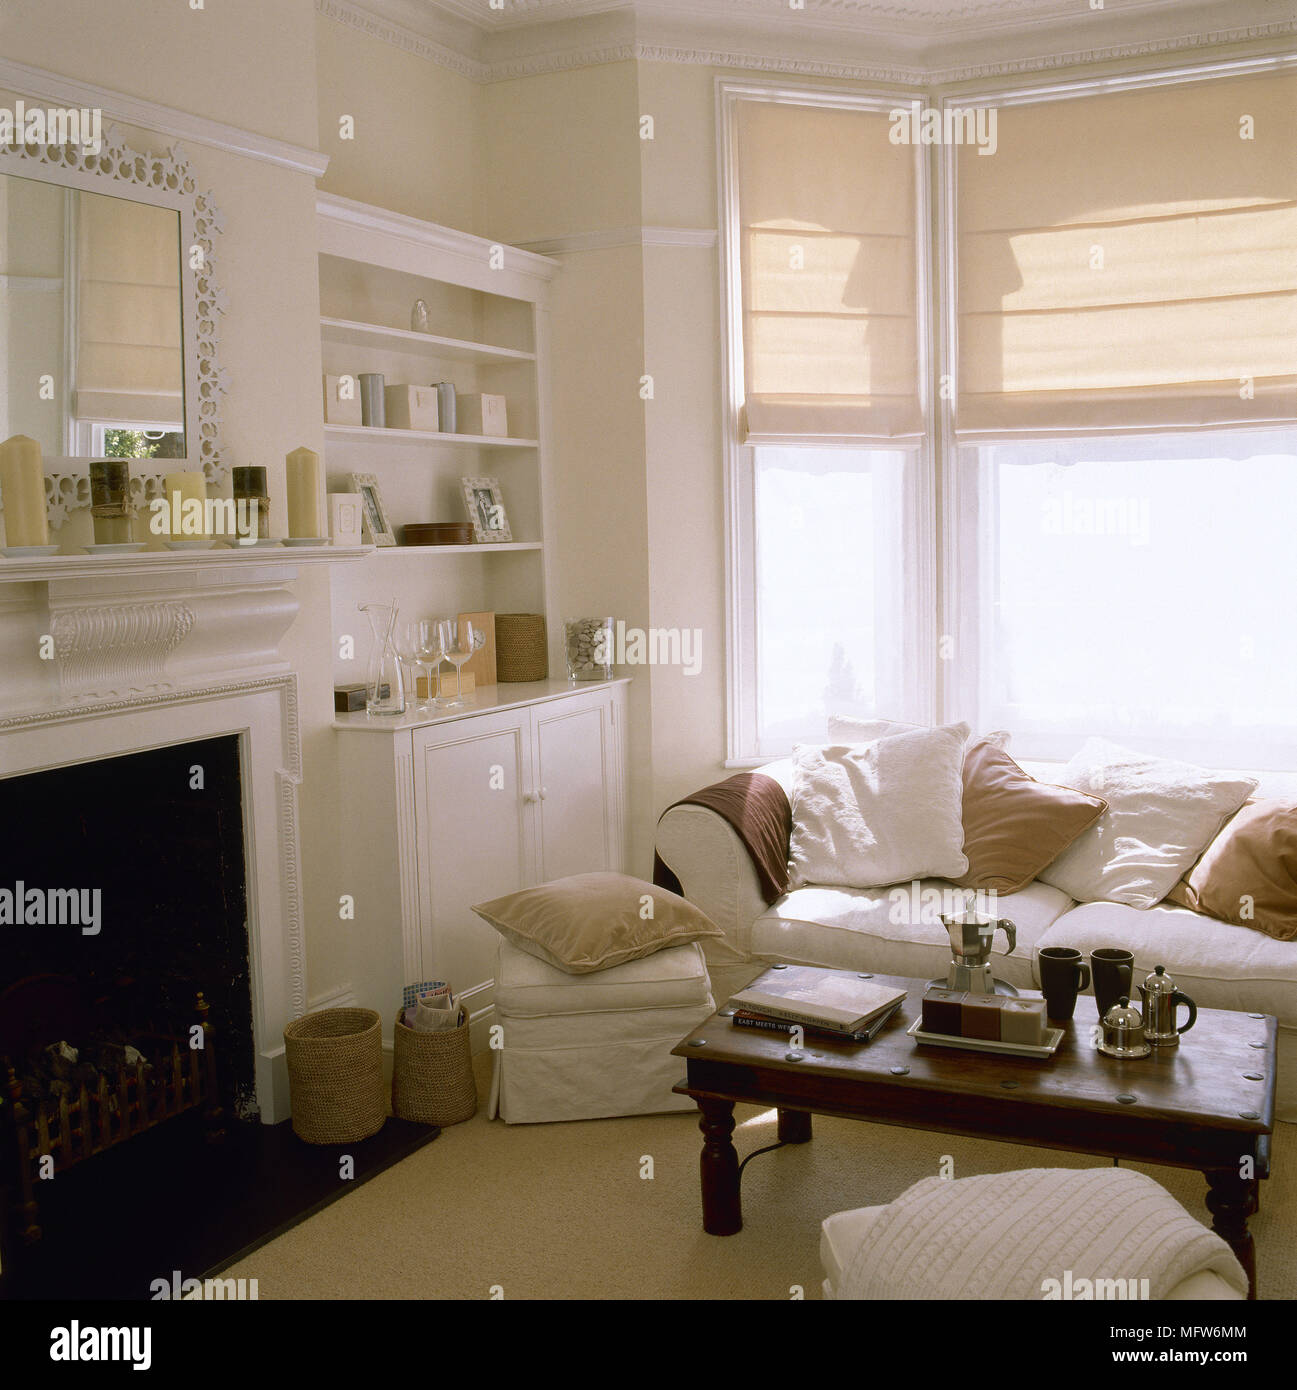 https www alamy com traditional sitting room with a fireplace built in cabinetry overstuffed sofa and footstool wooden coffee table and roman blinds over a bay window image181877604 html